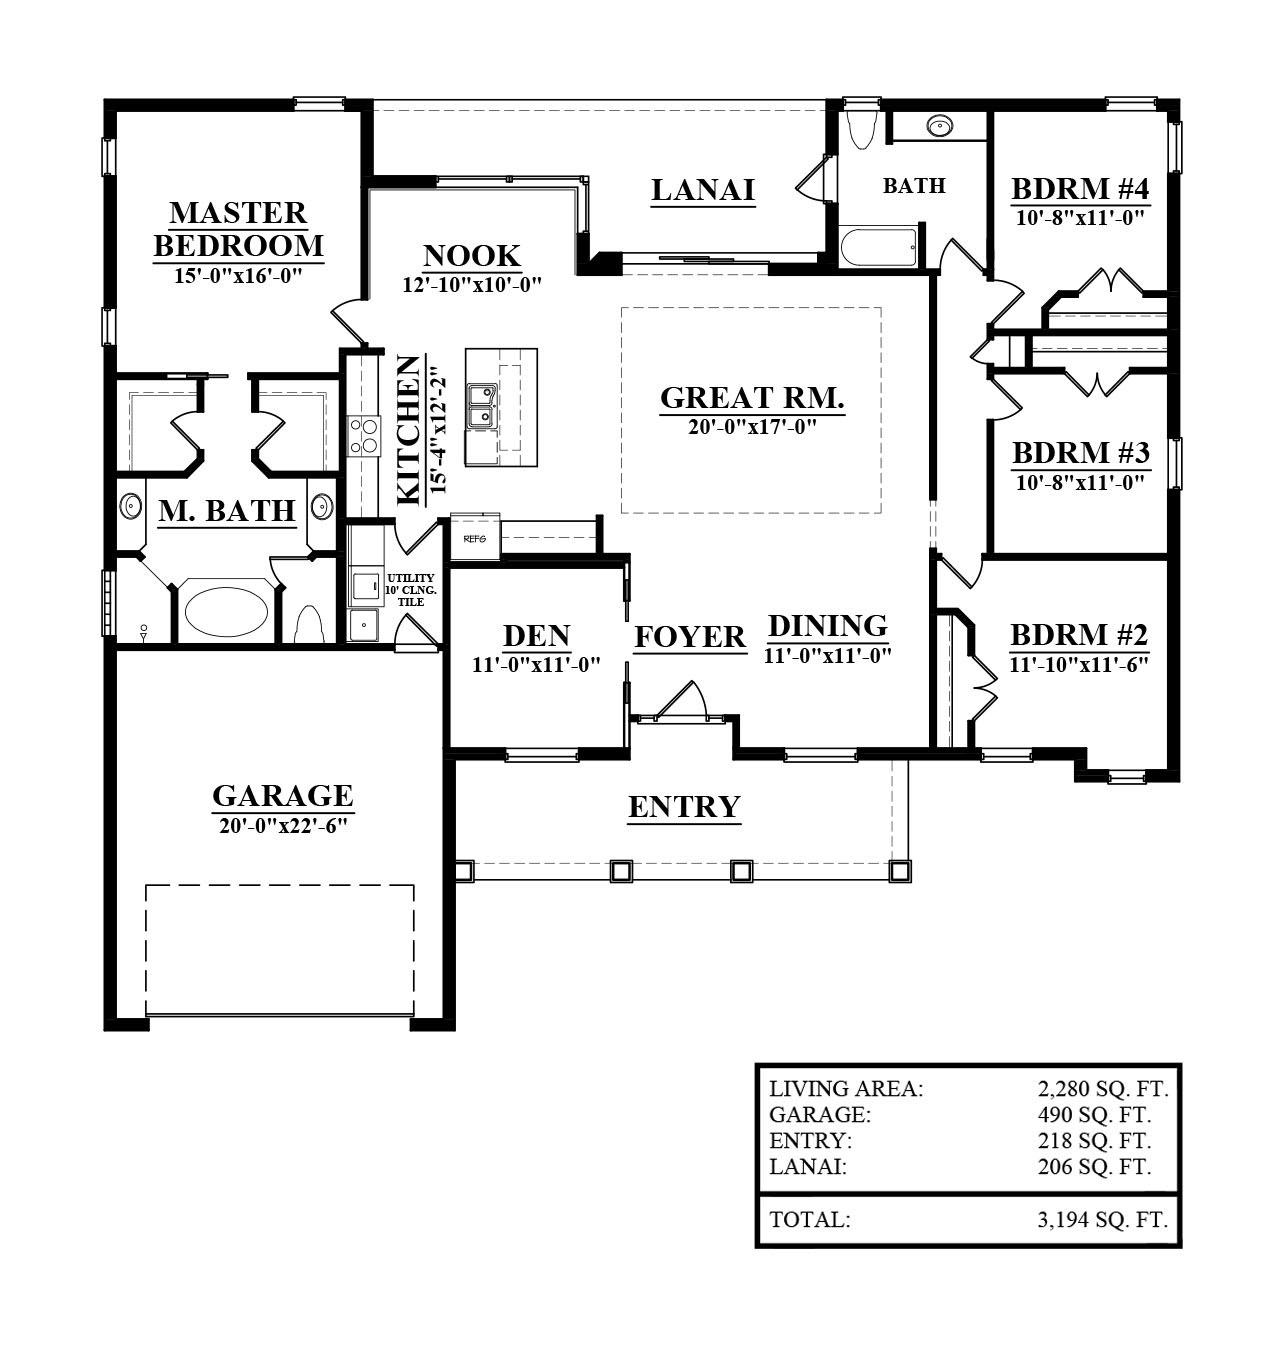 Ernie White Floor Plans_0000_THE STONECREST 4 FLYER.jpg